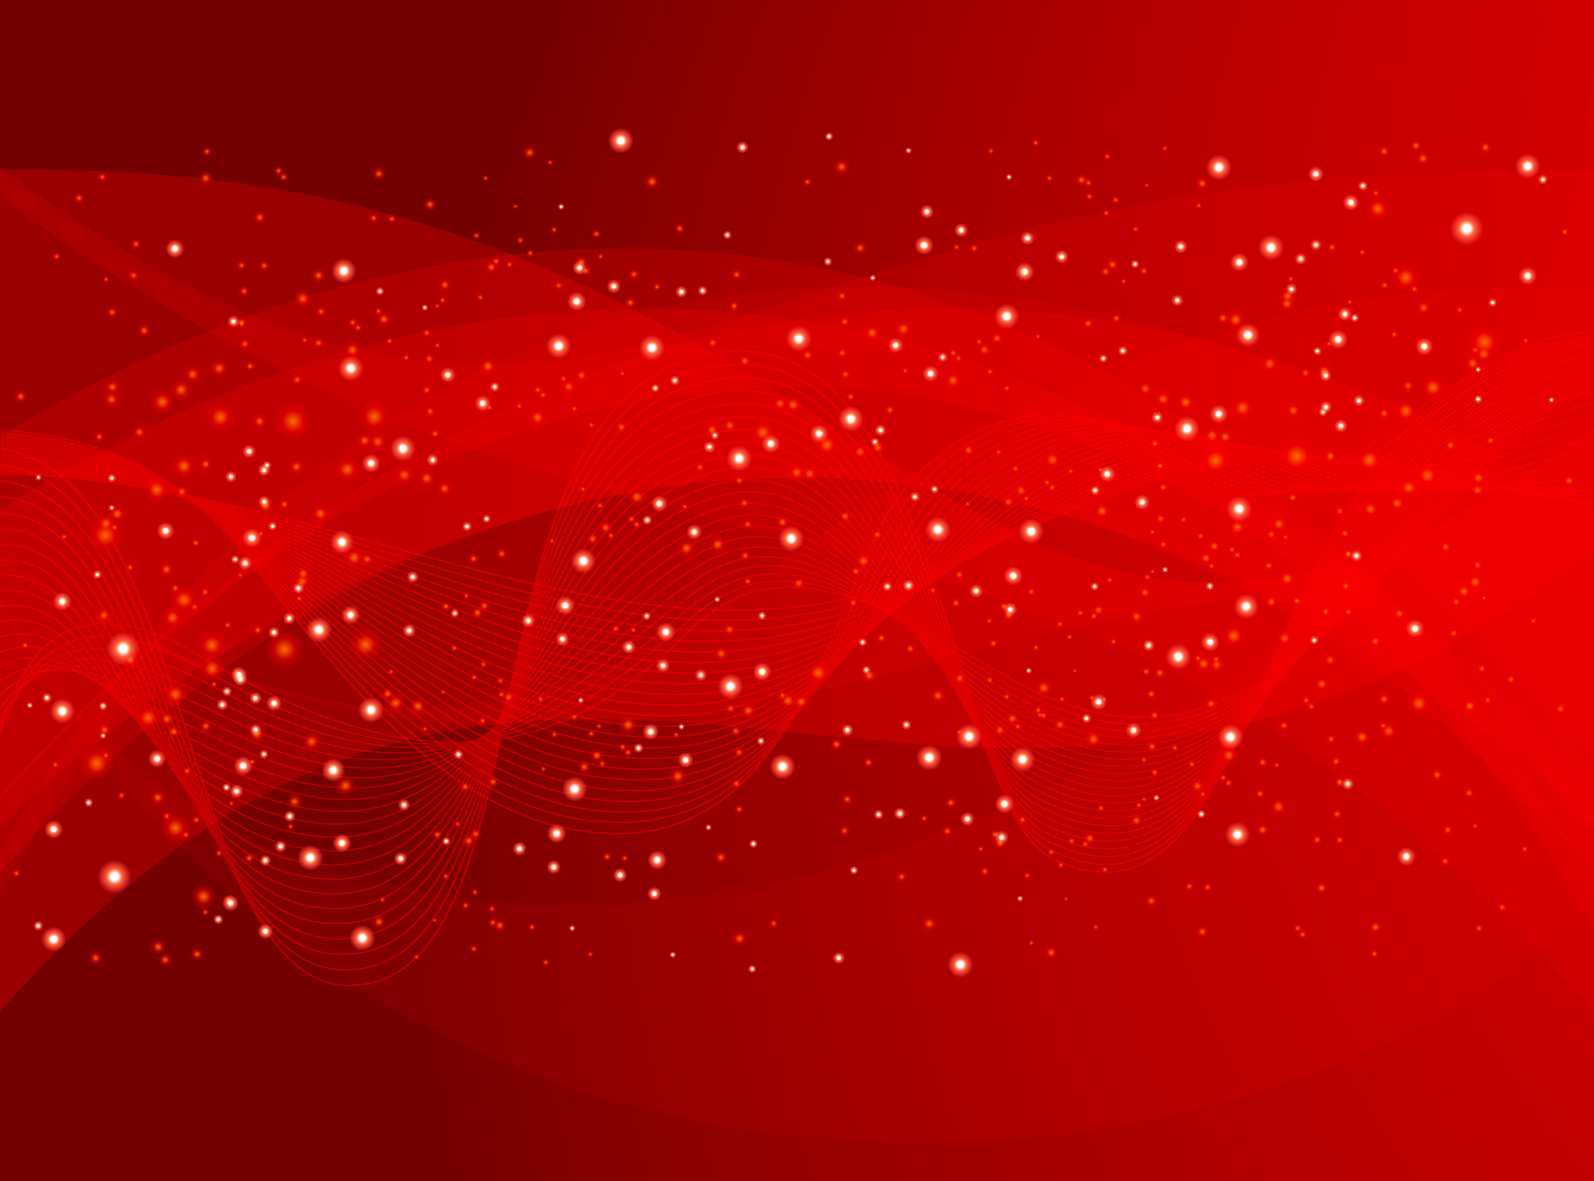 Red Abstract Background Vector Free